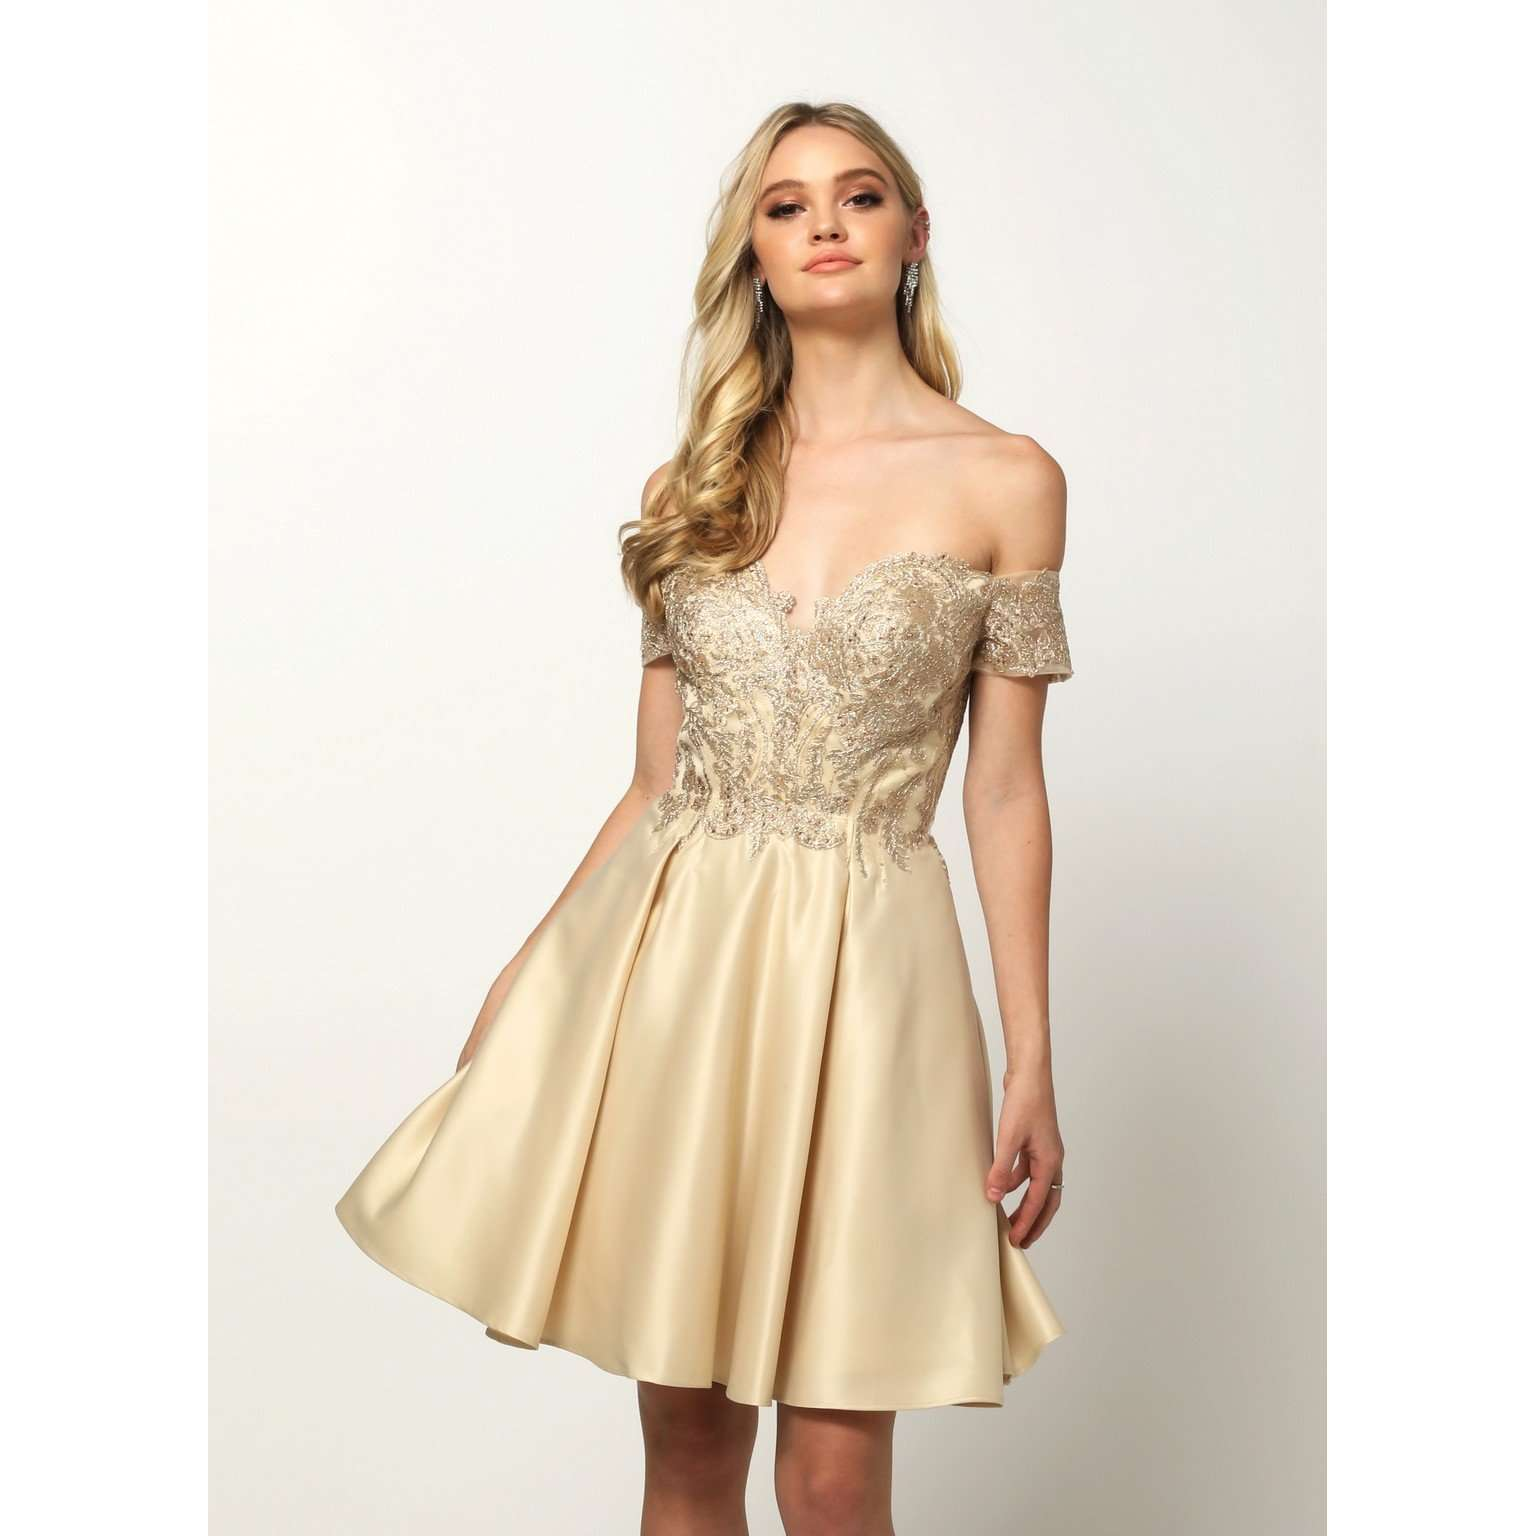 Embroidered Bodice Off-the-Shoulder Short Dress 828 - Julietdresses